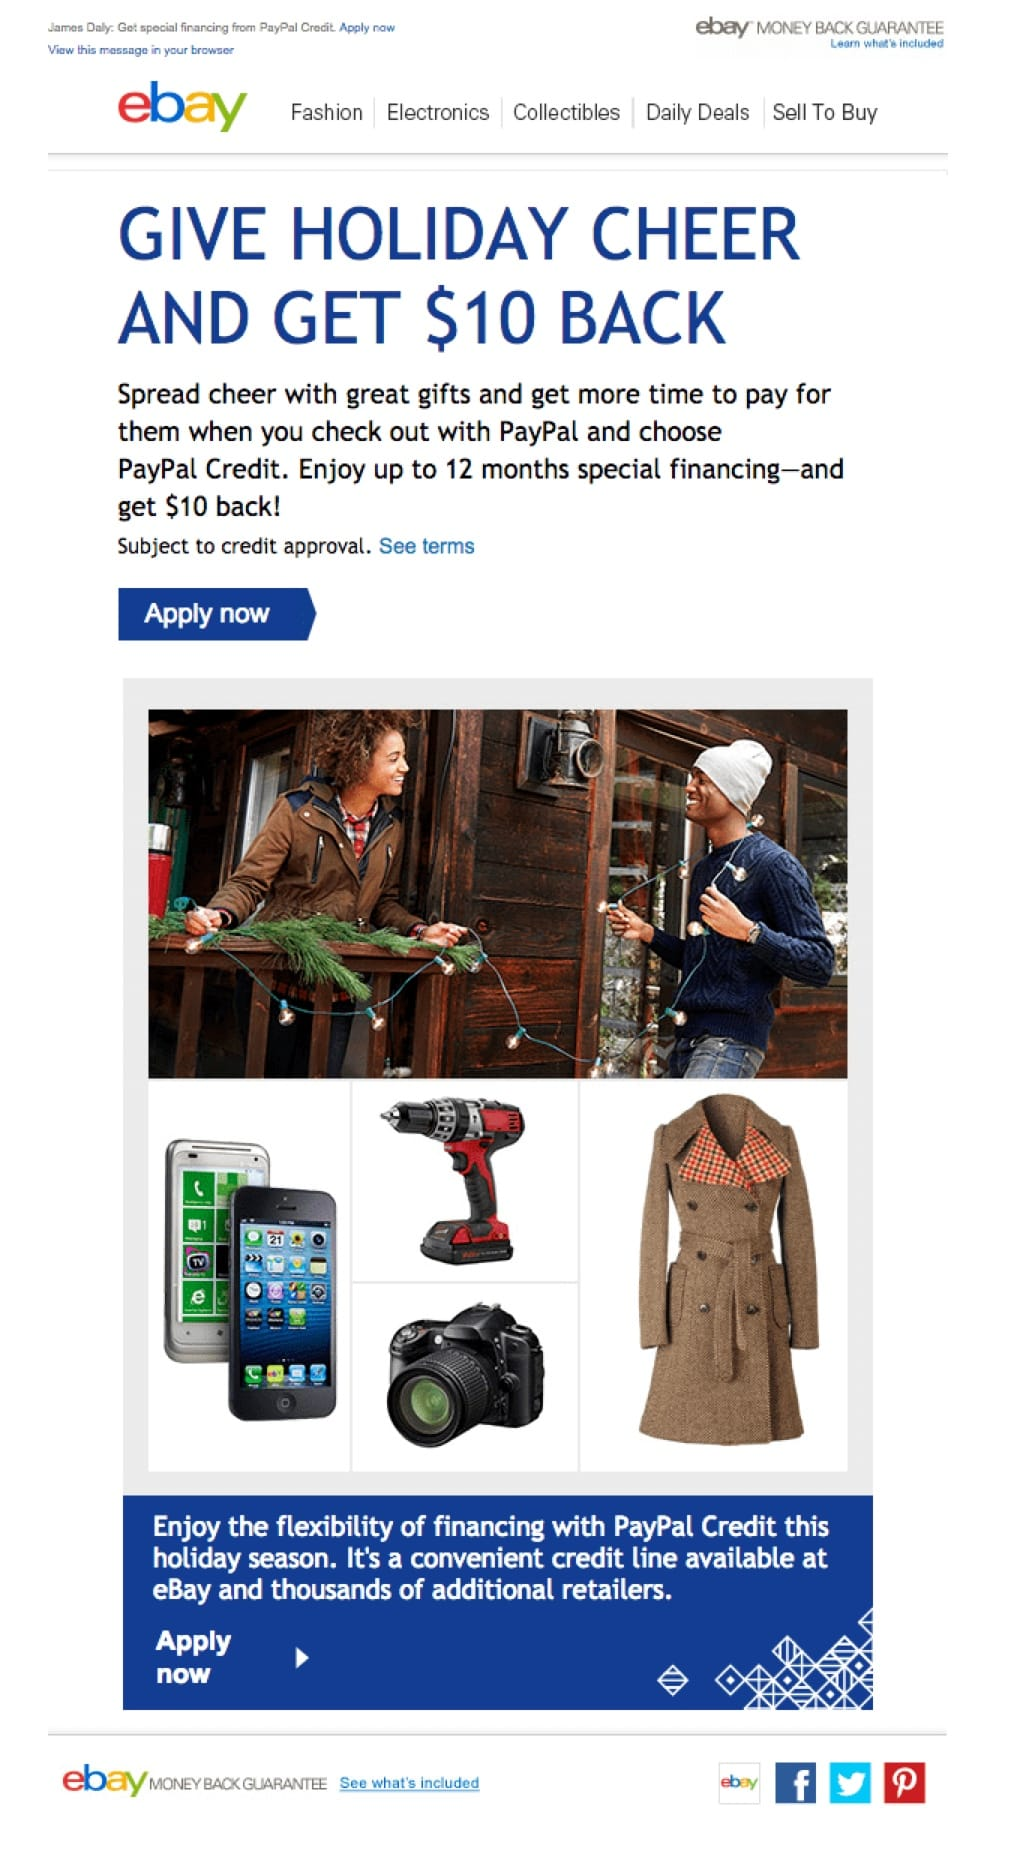 promotional email example ebay (special offer)